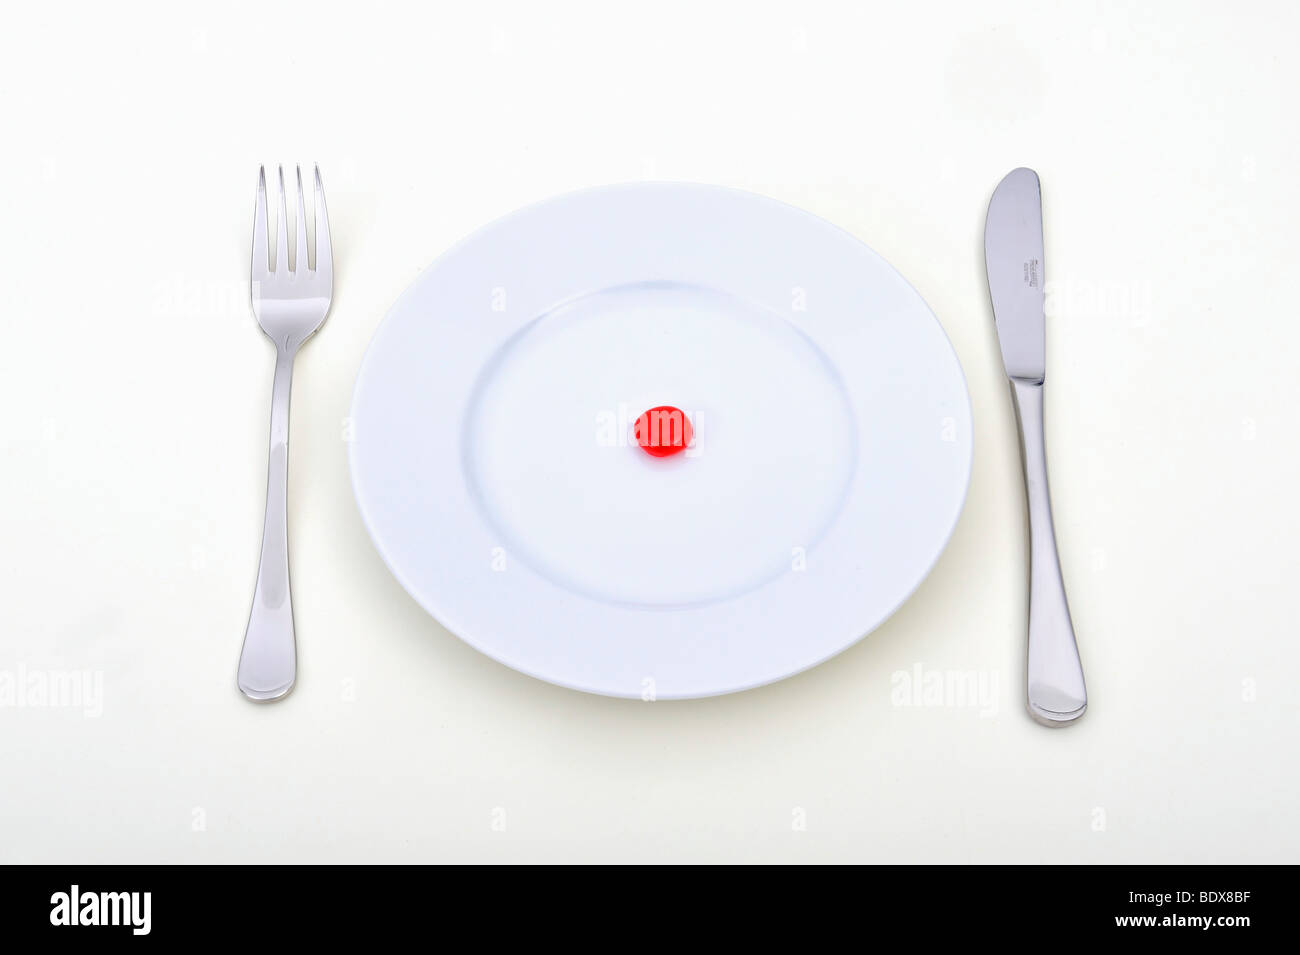 Symbolic image for synthetic food, pill consumption, drug abuse, diet - Stock Image